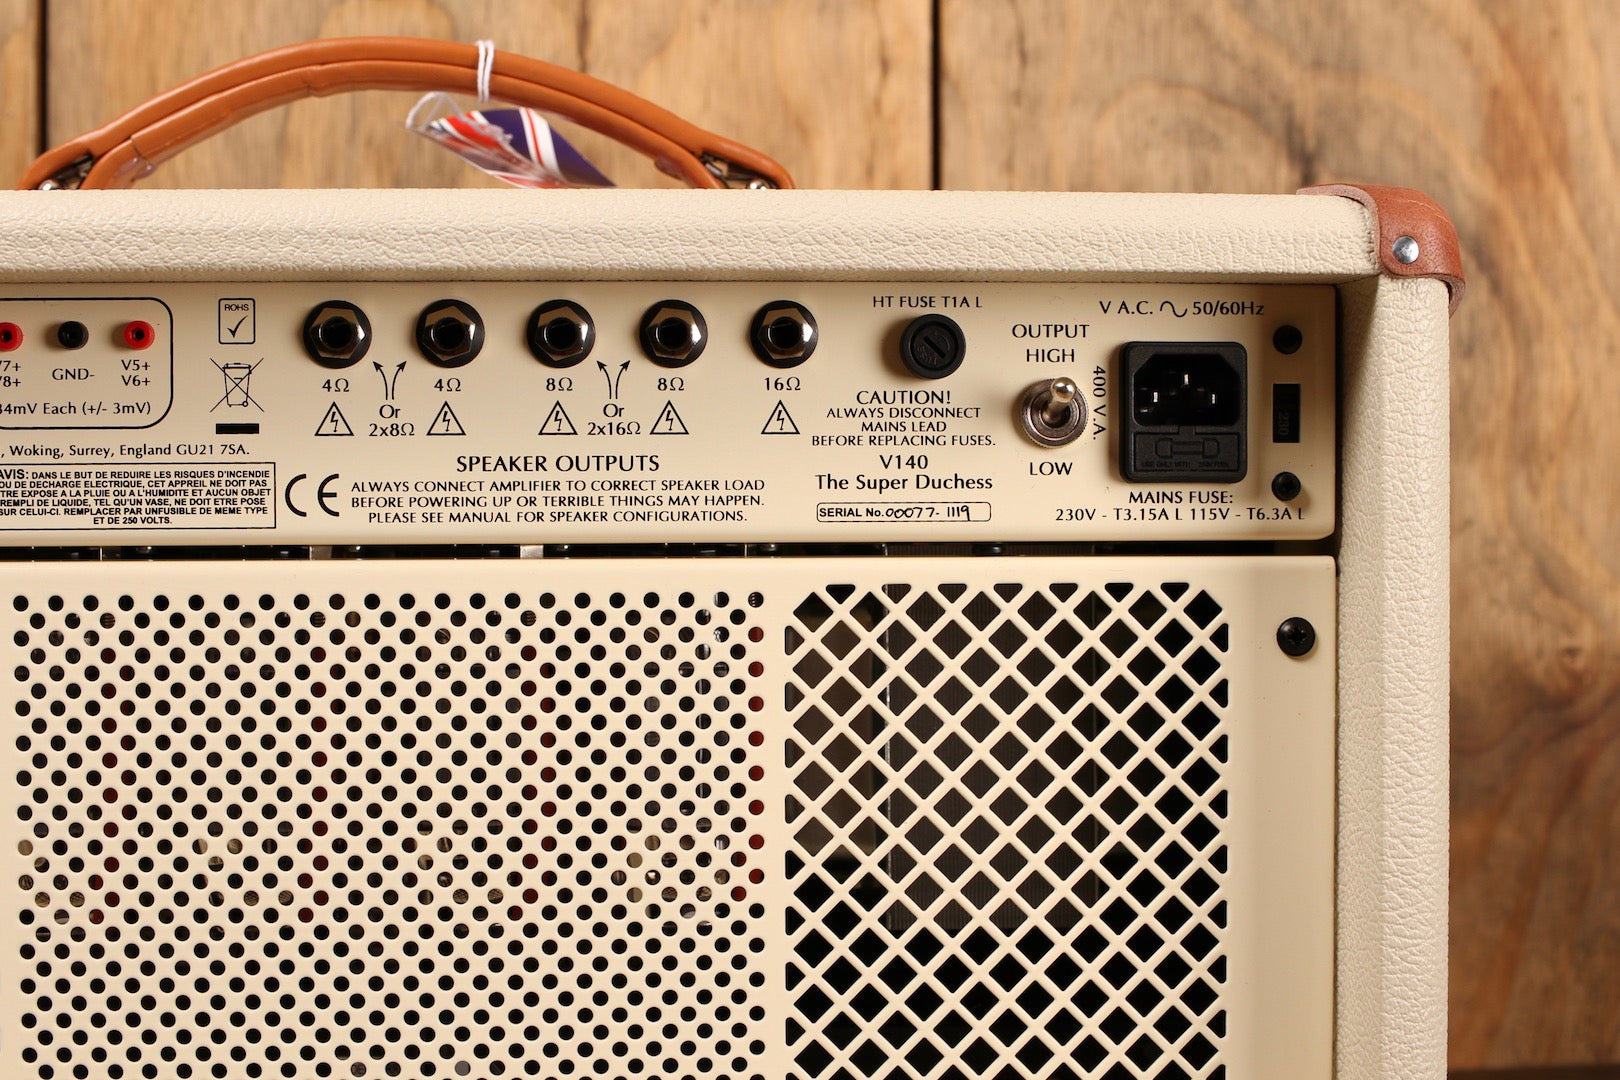 Victory Amps V140 The Super Duchess